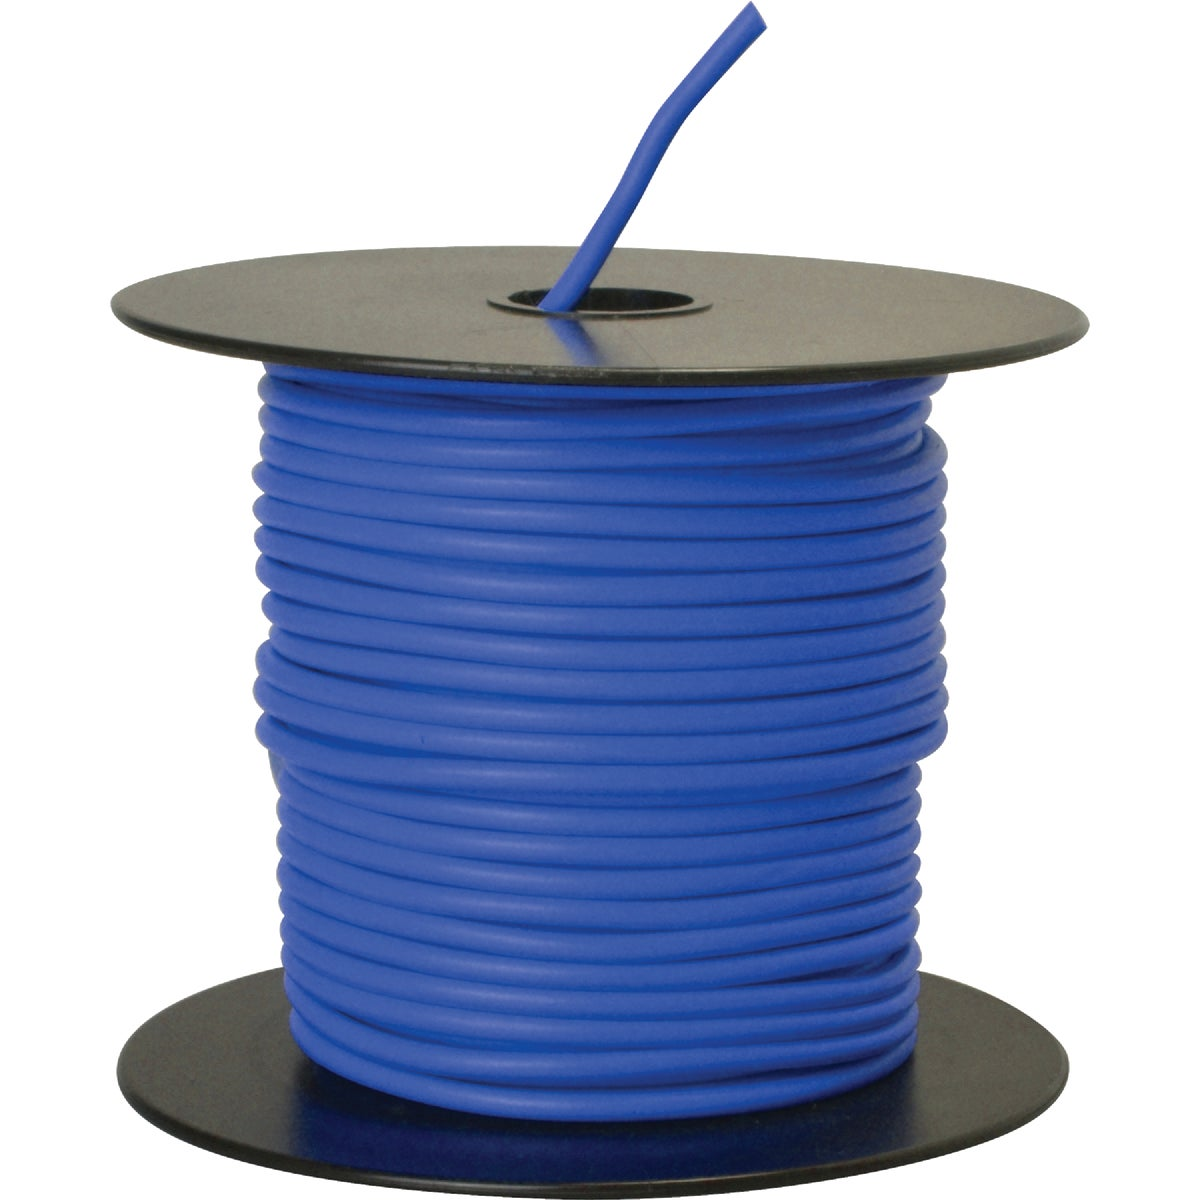 100' 14GA BLUE AUTO WIRE - 14-100-12 by Woods Wire Coleman